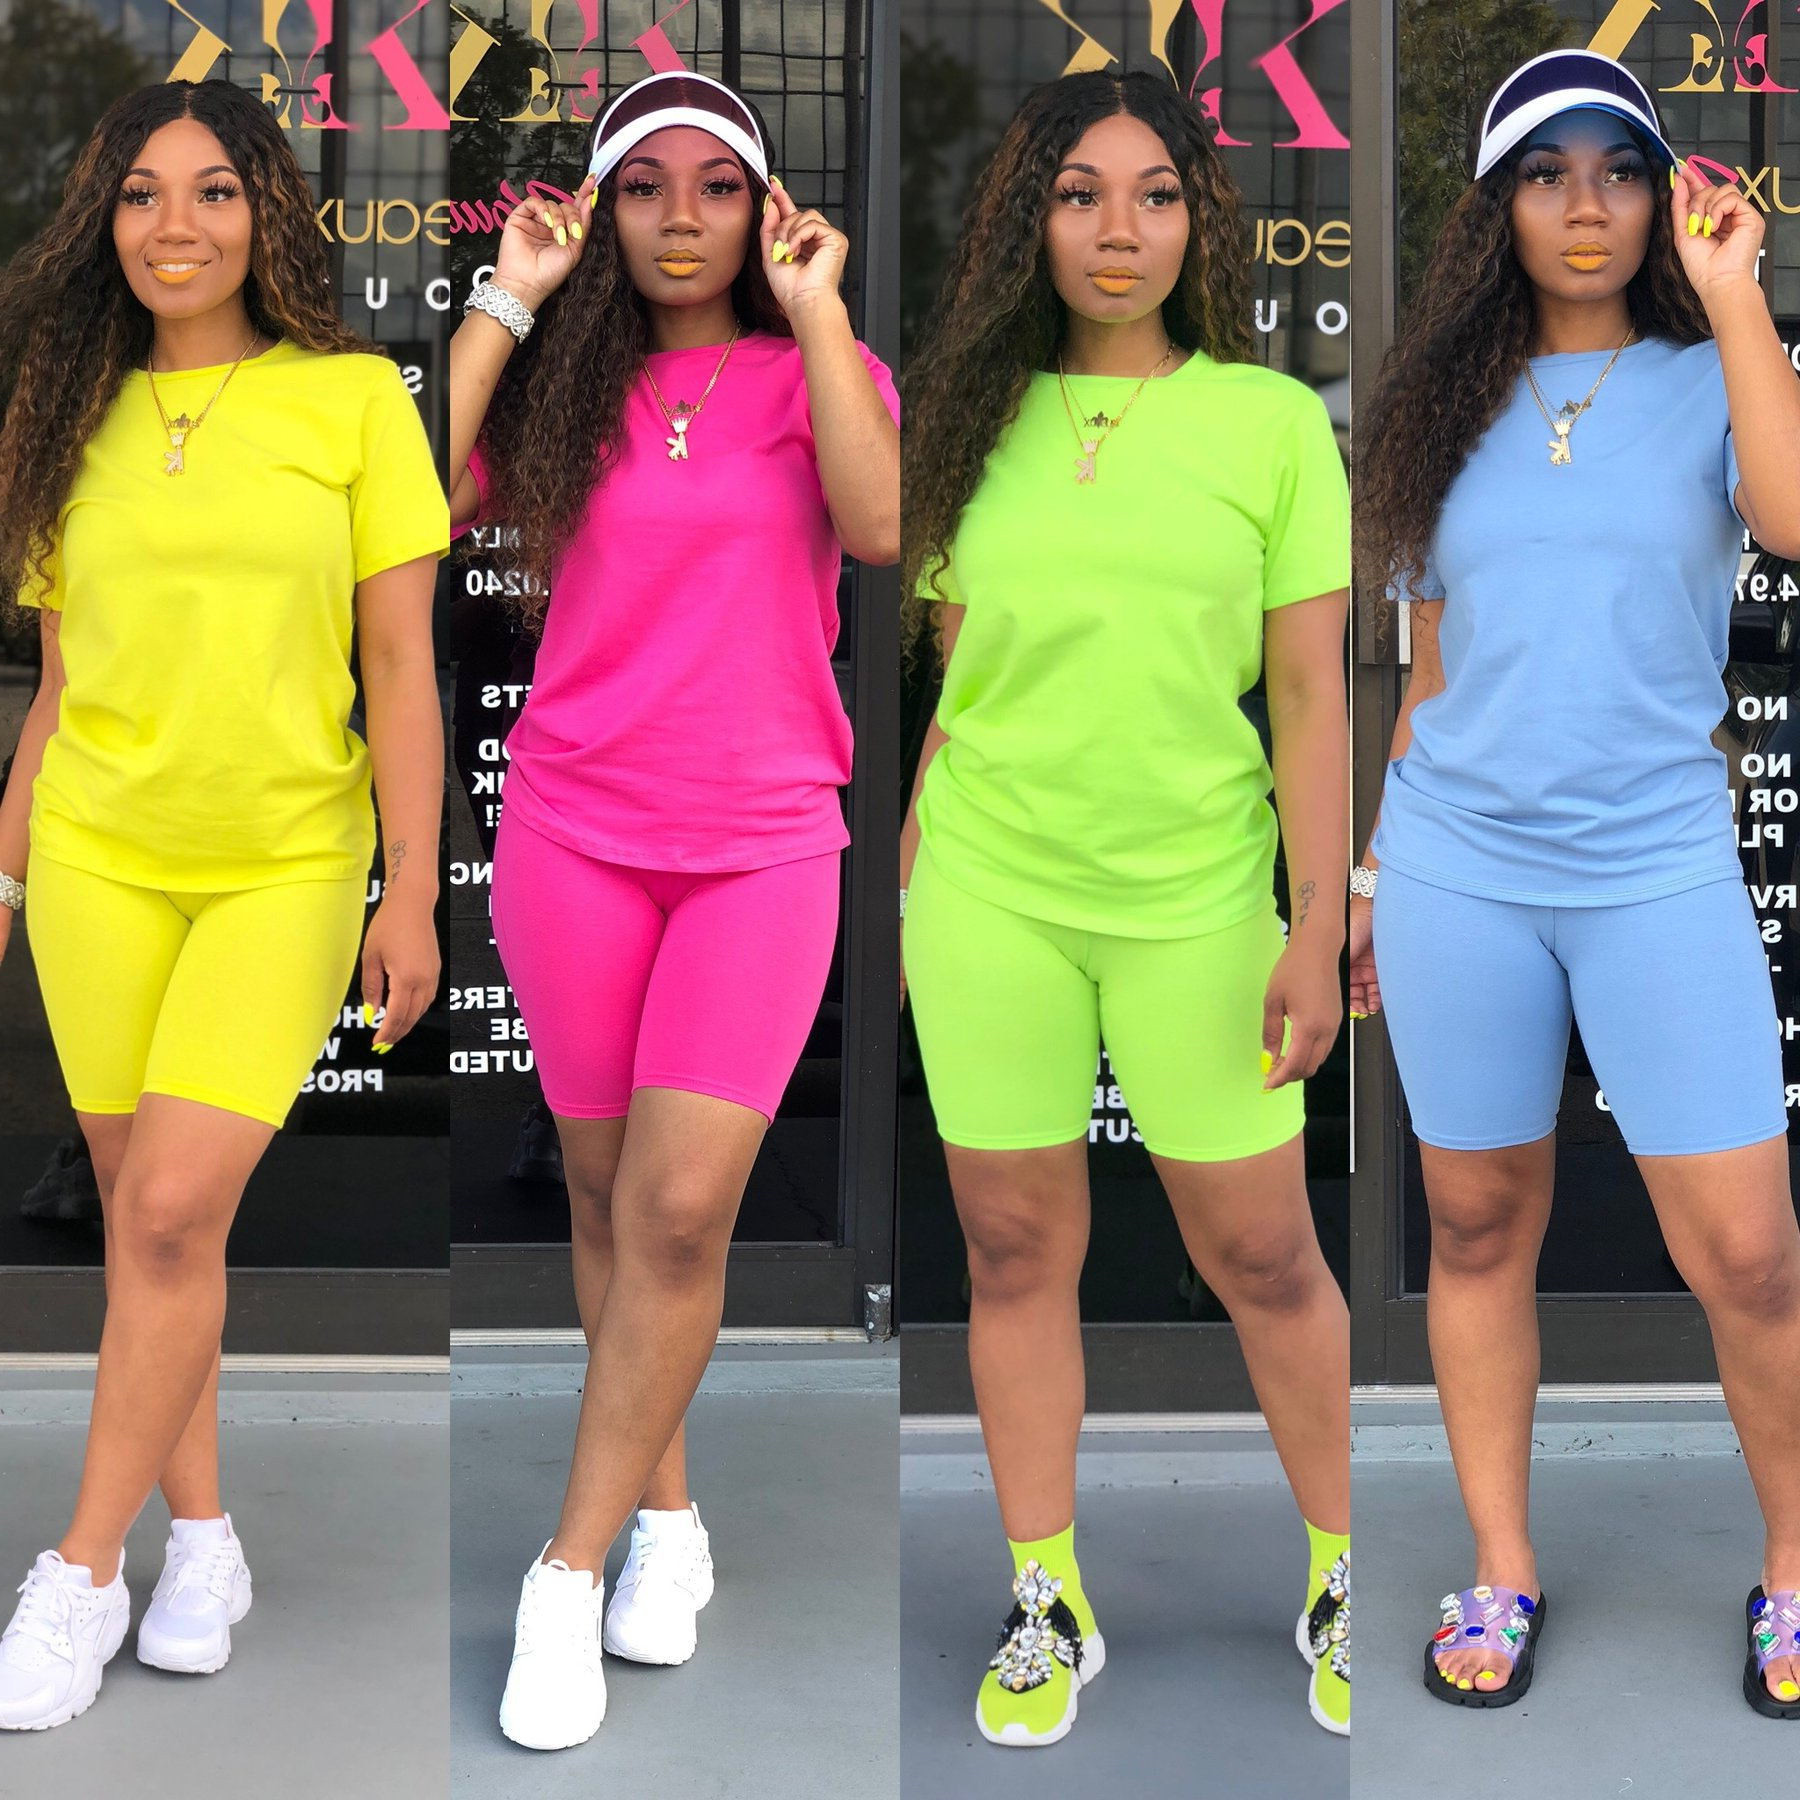 >Two-piece Solid <font><b>Color</b></font> Women's Clothing. Short-sleeved Crew Neck T-shirt and Tight-fitting Shorts. Simple Style Tracksuit <font><b>Outfit</b></font>